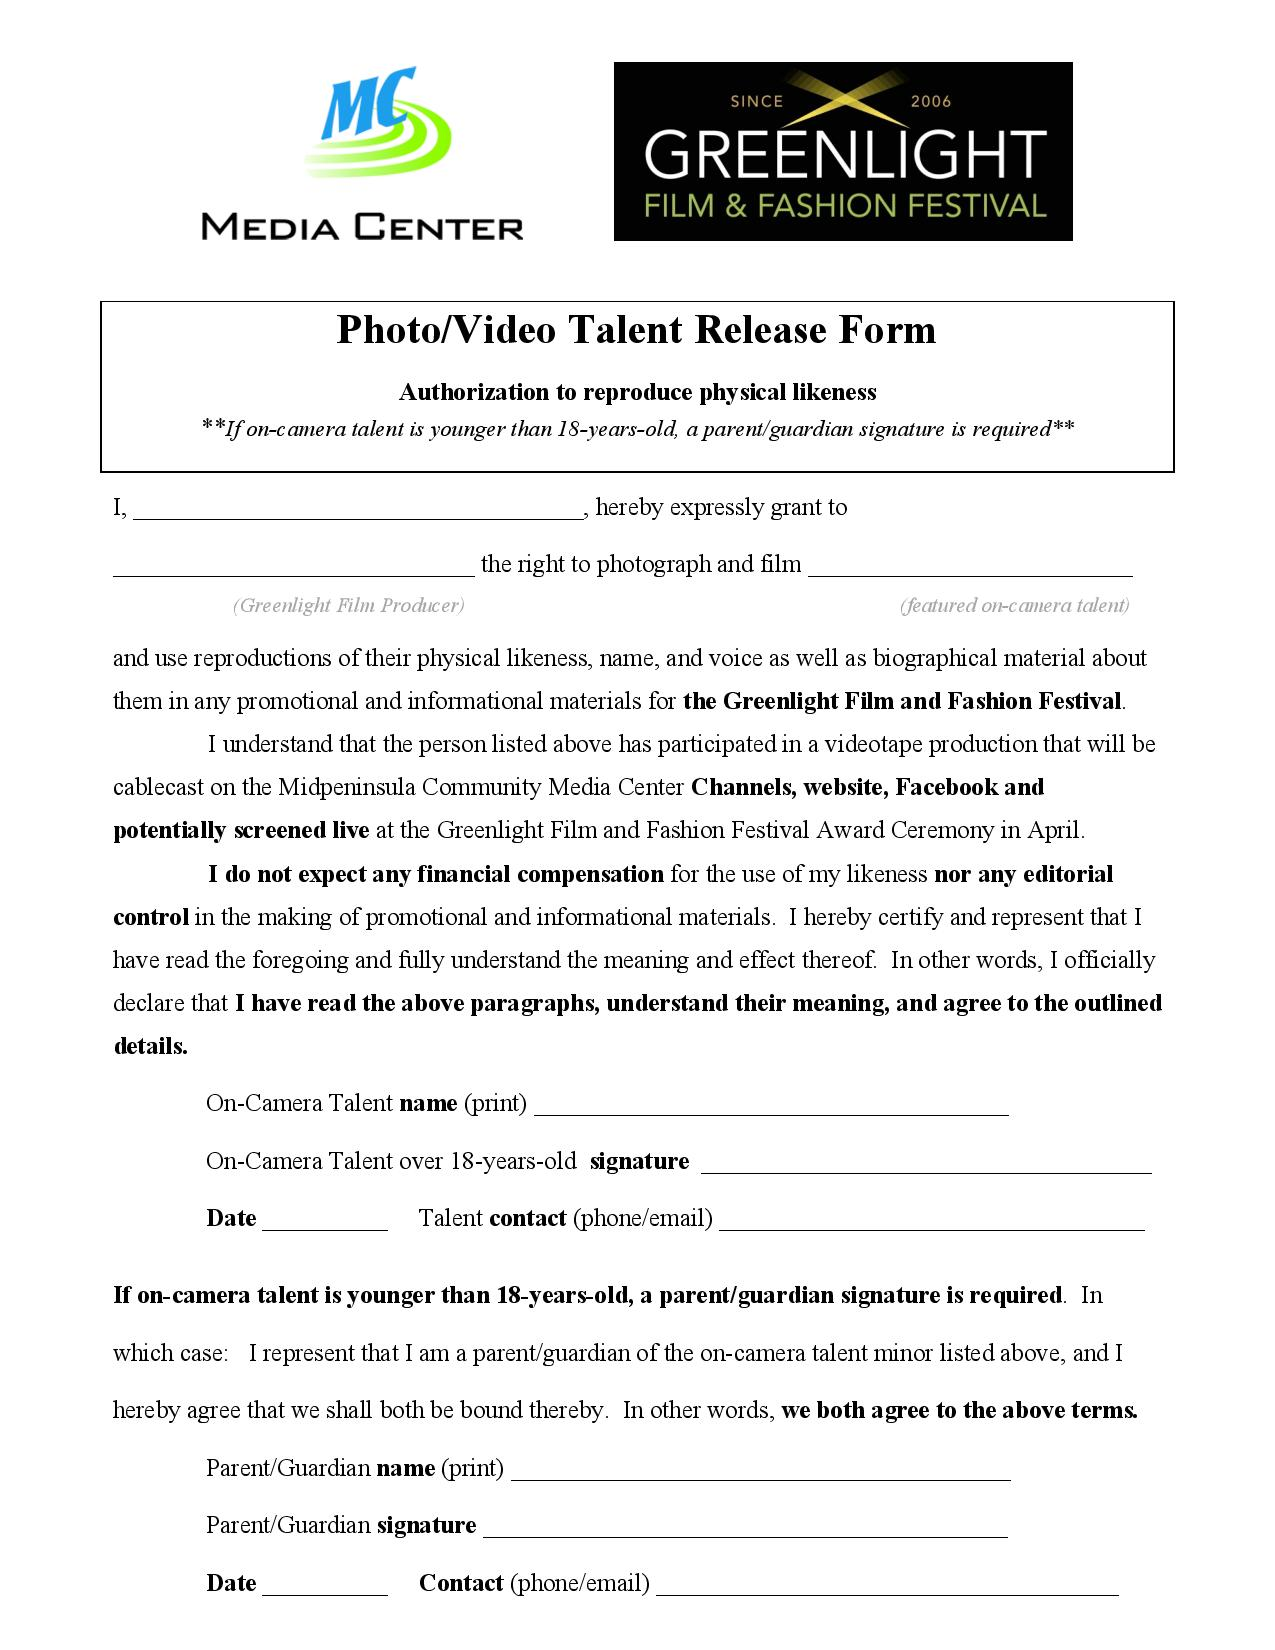 Greenlight 2014 Film Talent Release Forms | MidPen Media Center